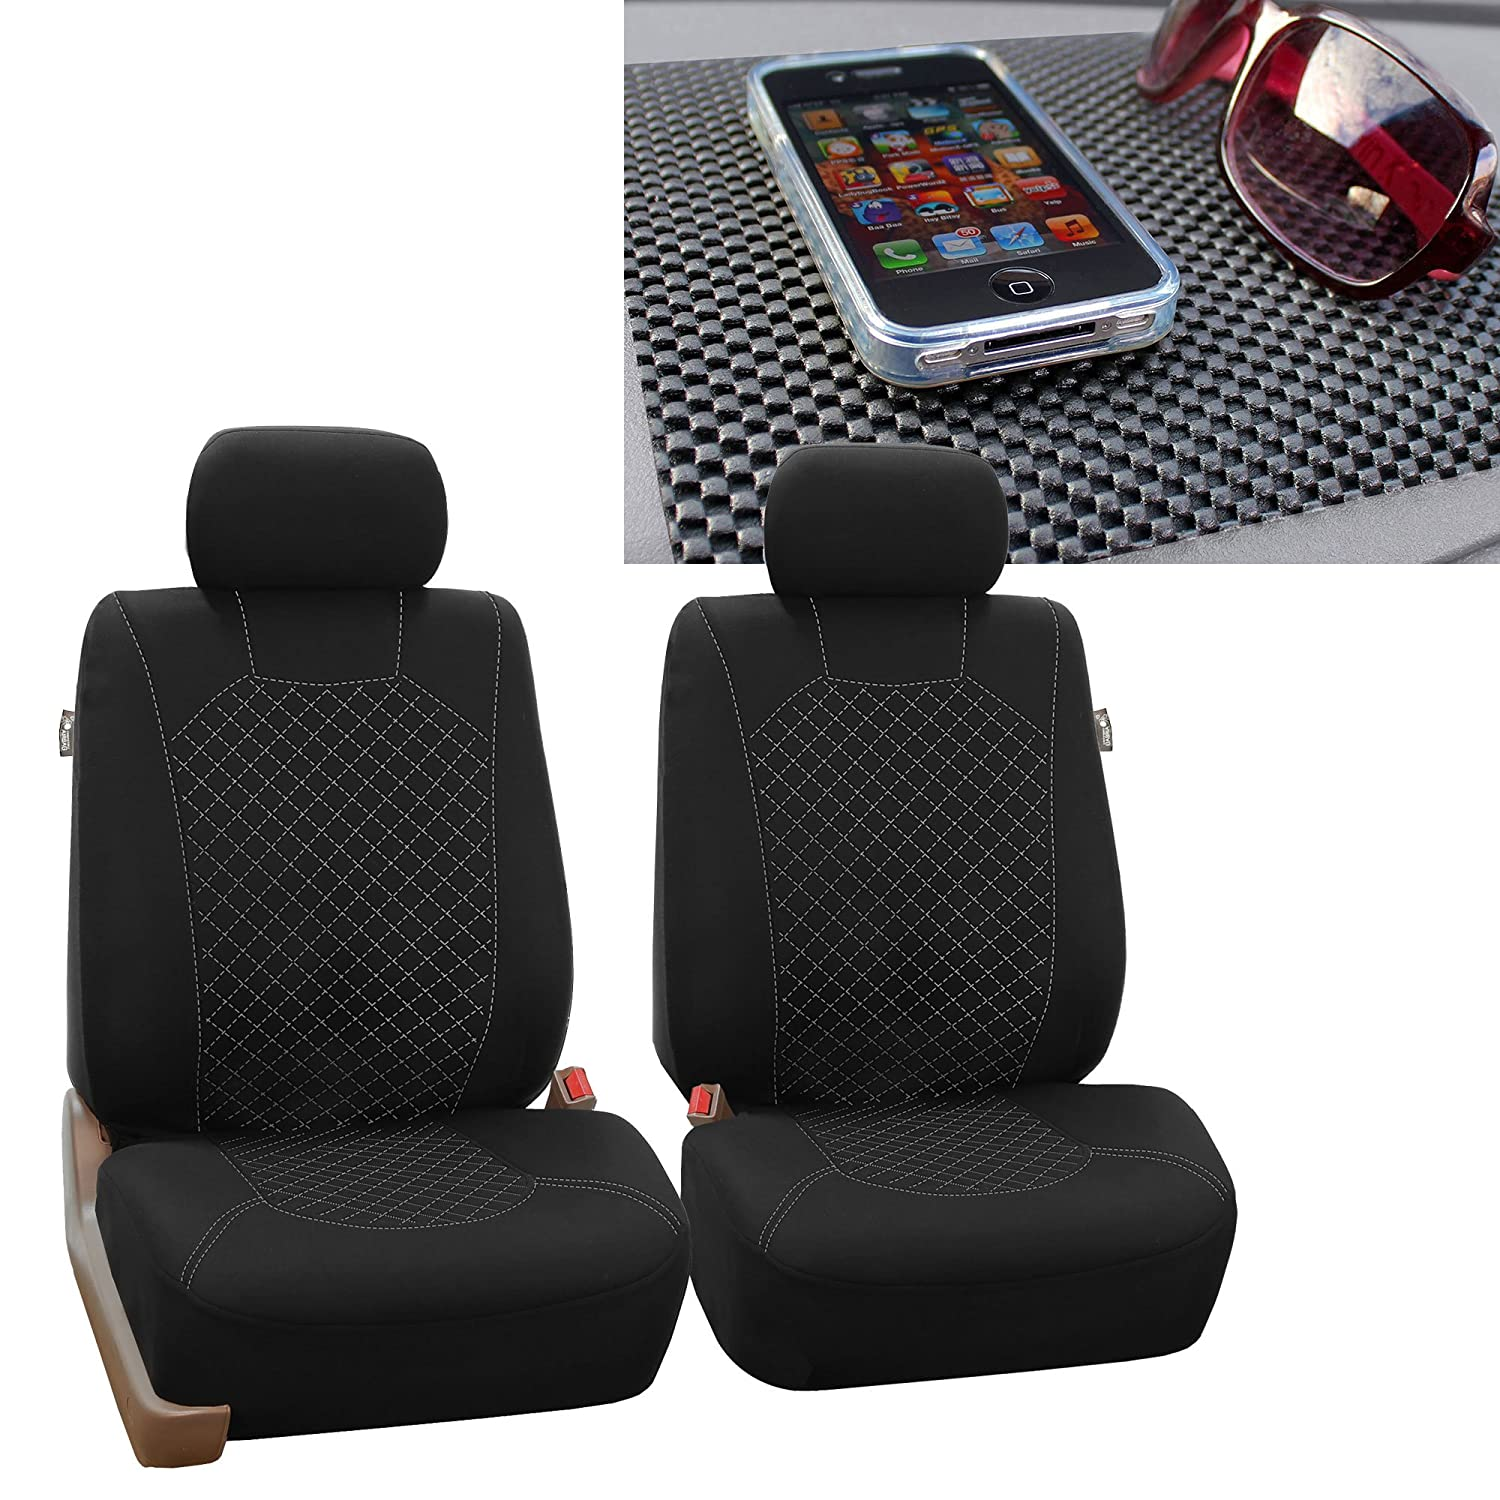 Red//Black FH1002 Non-Slip Dash Pad- Fit Most Car SUV Truck or Van FH Group FH-FB066102 Ornate Diamond Stitching Car Seat Covers